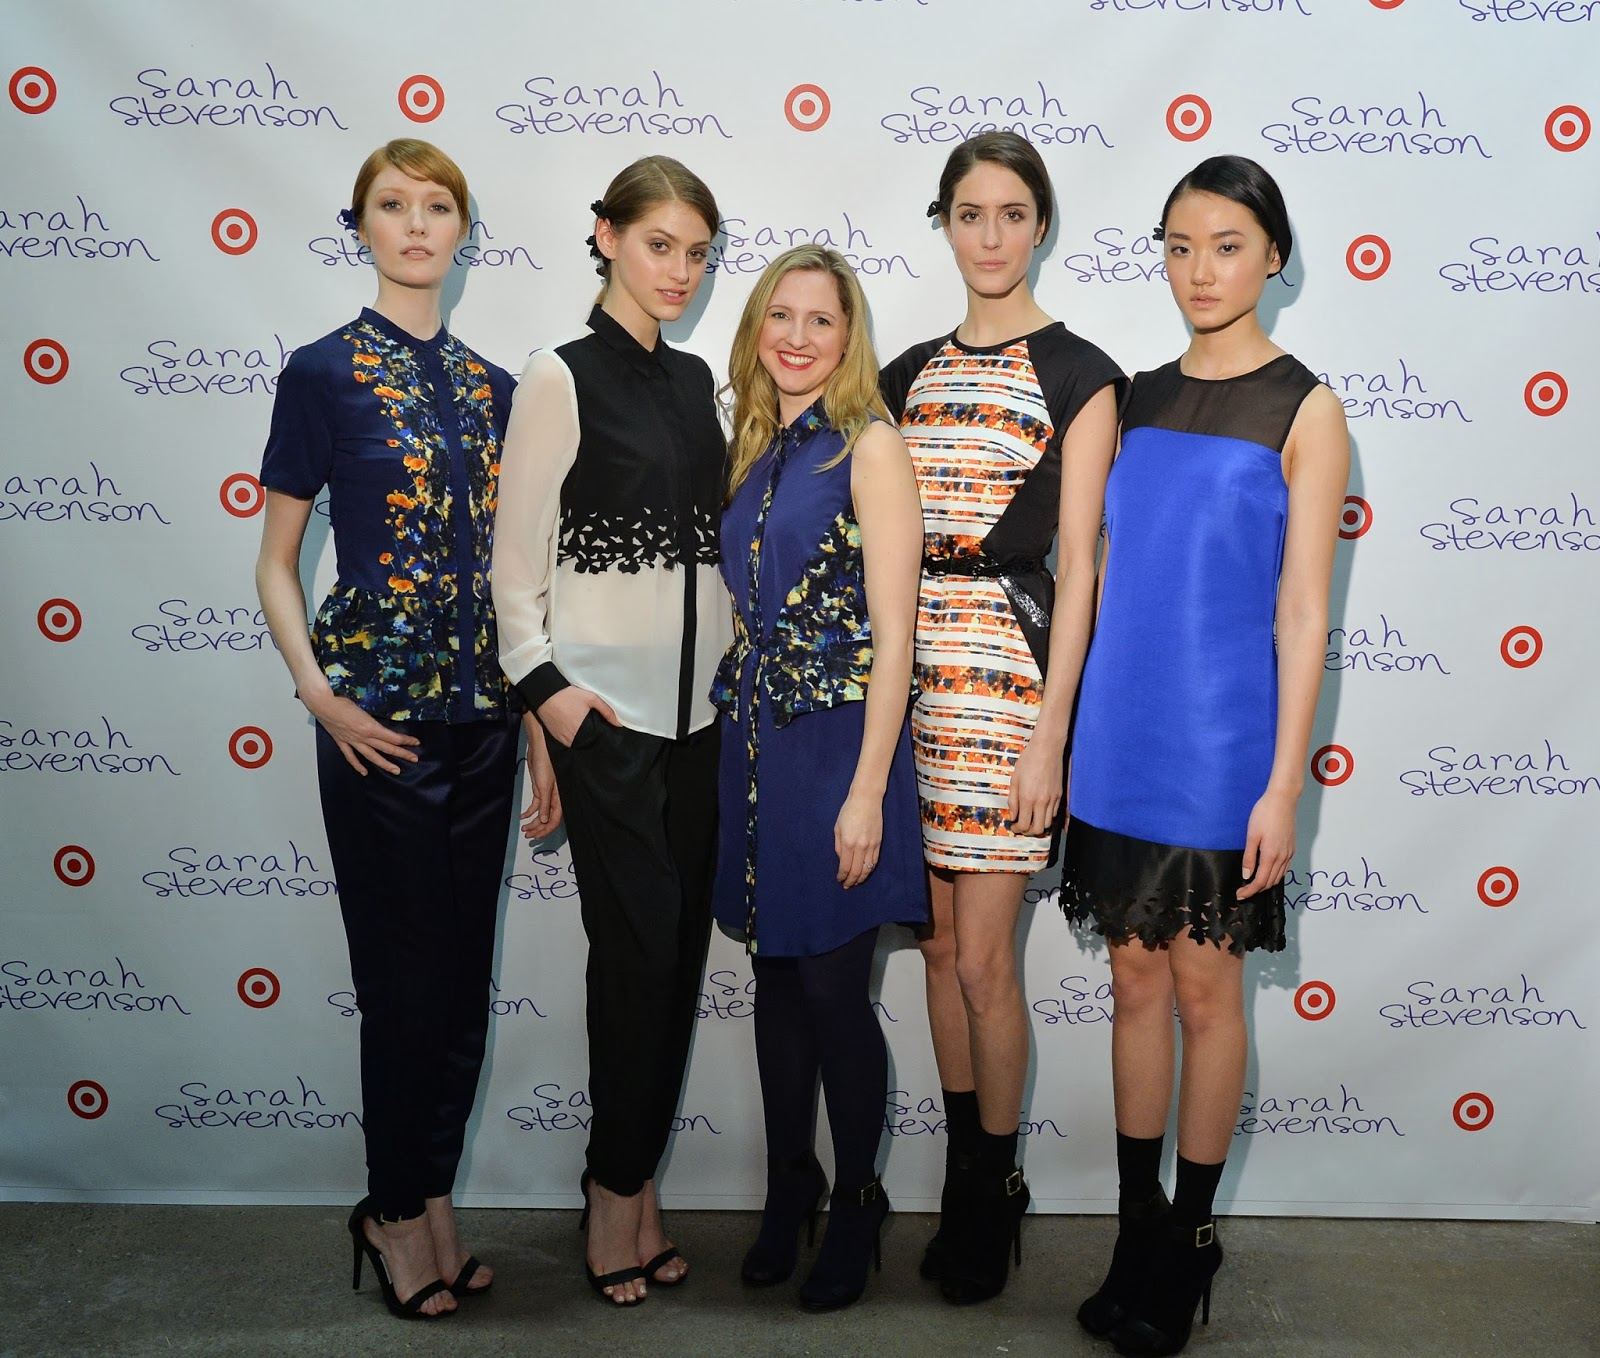 Sarah-Stevenson-For-Target-Canada, Models, Fashion-event, Spring-Collection